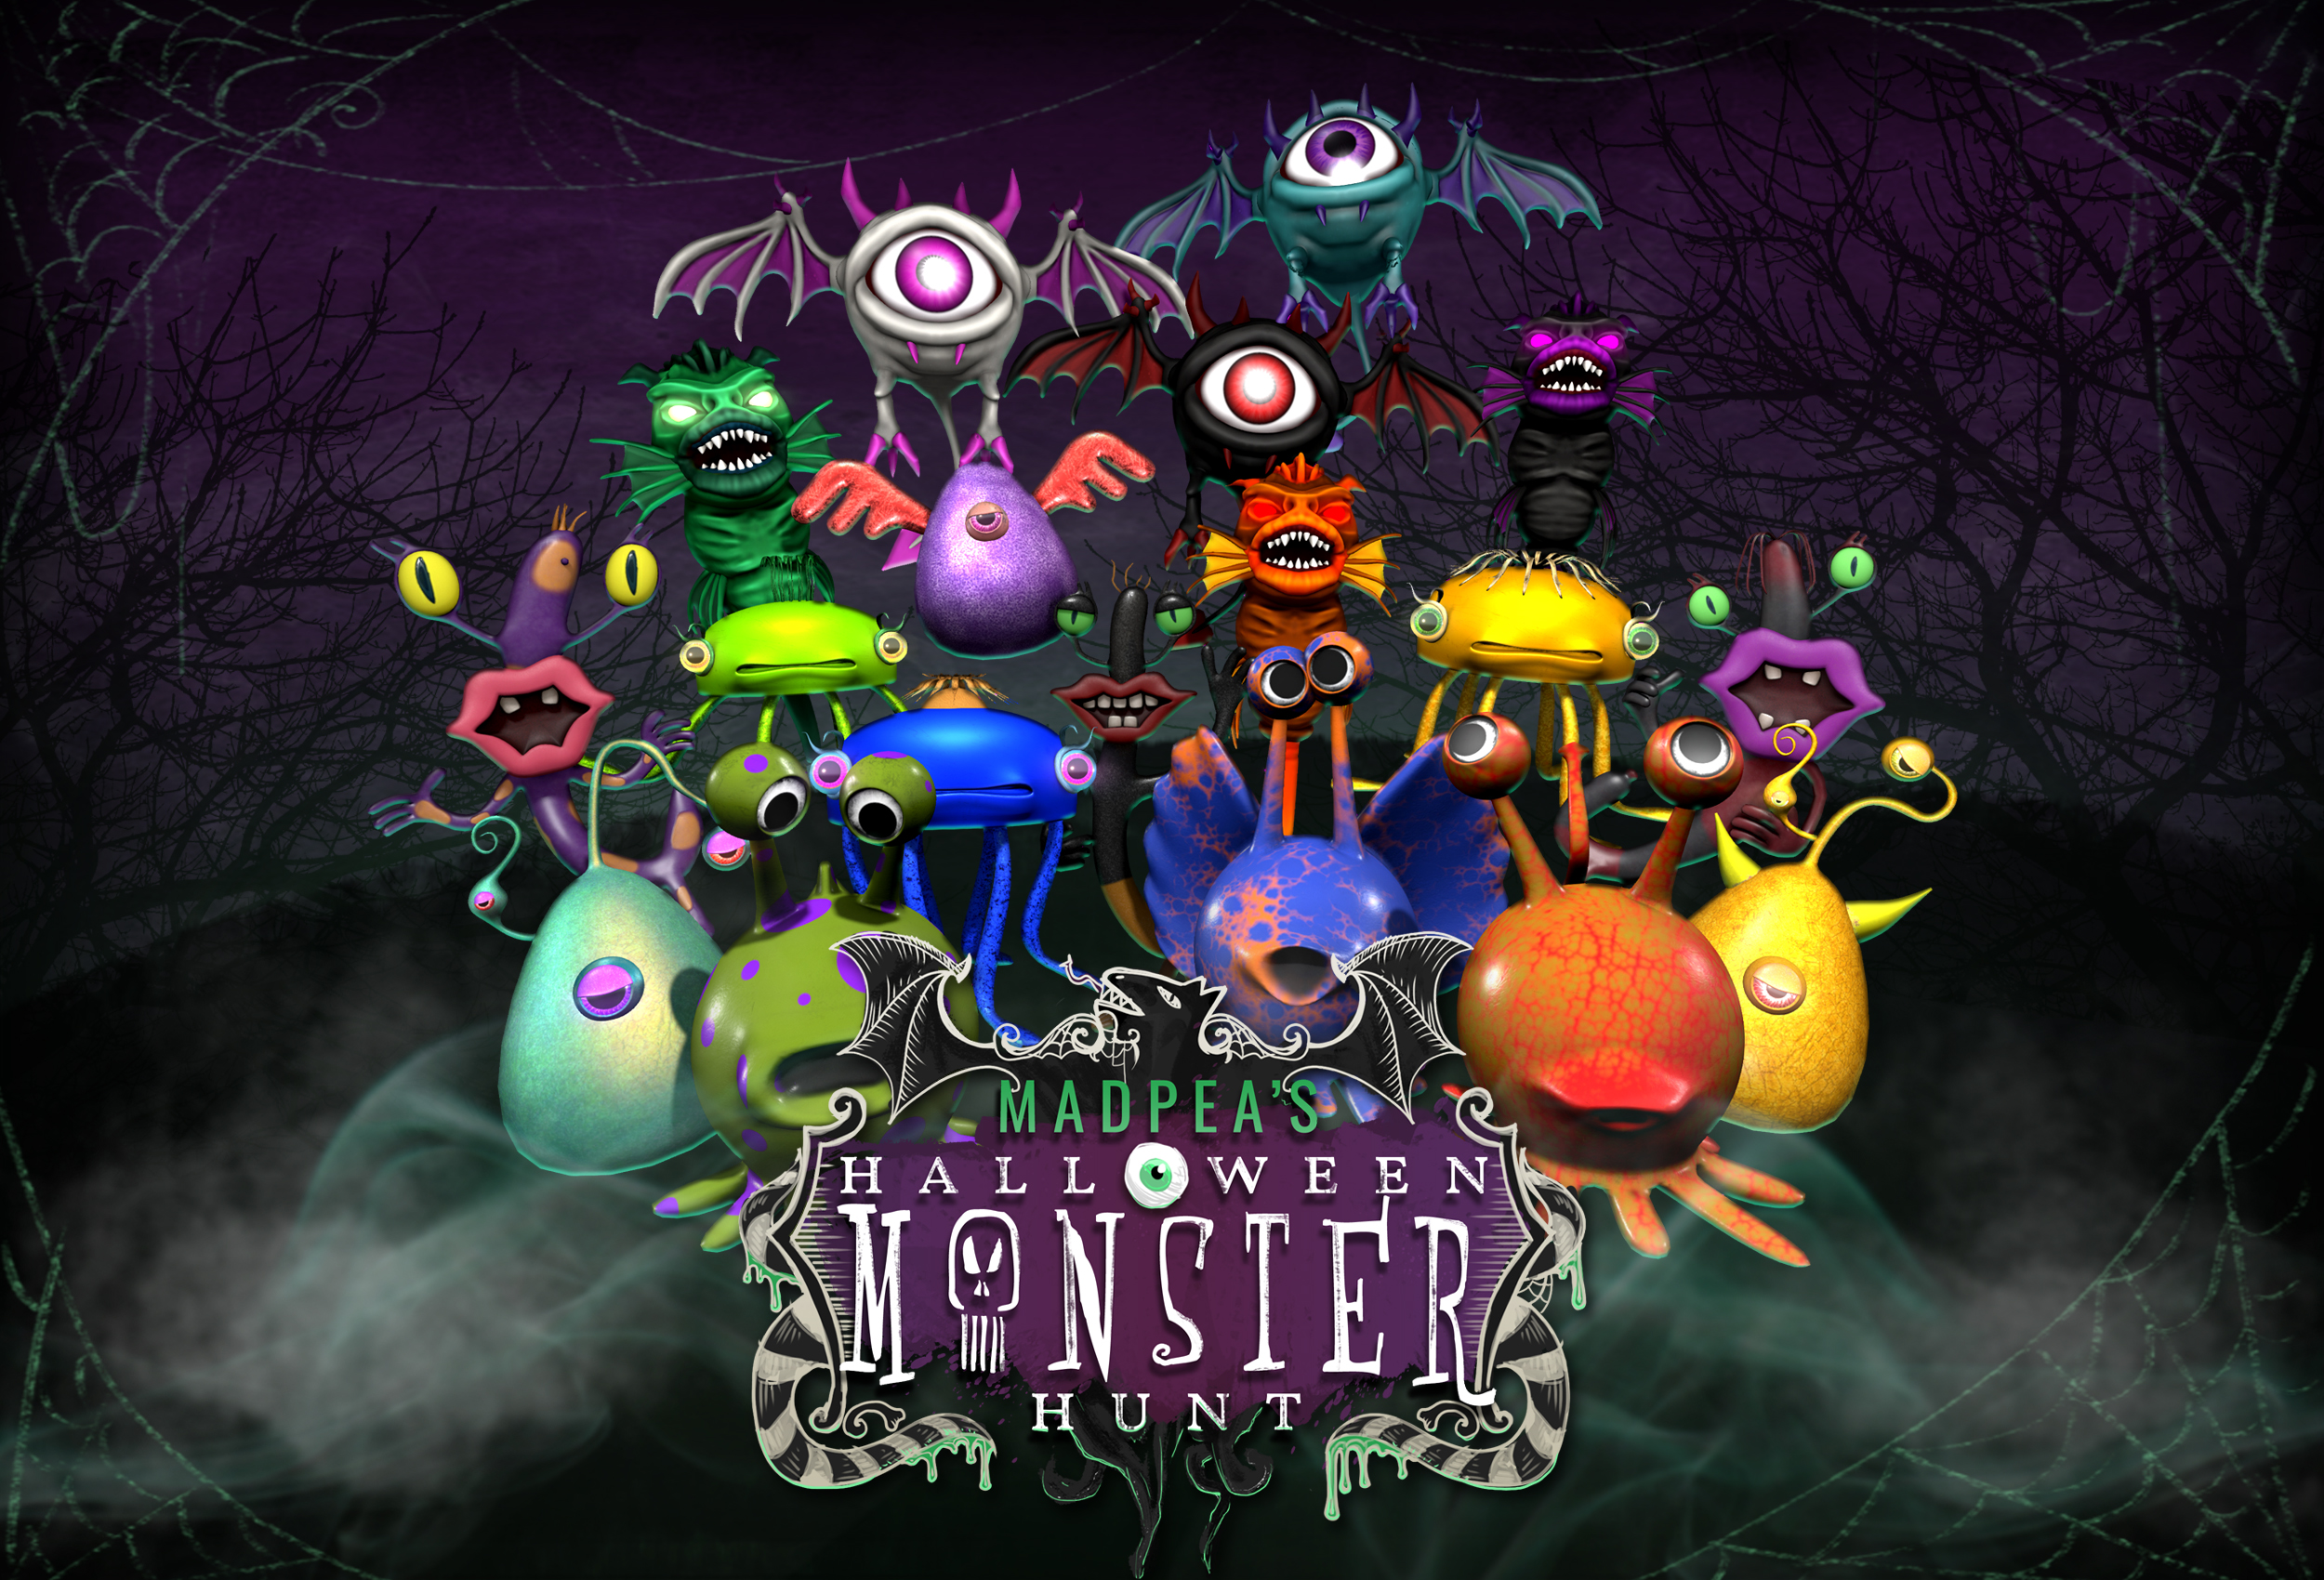 MadPea Monster Hunt Hosts – Hiding for Hunters' Happiness!